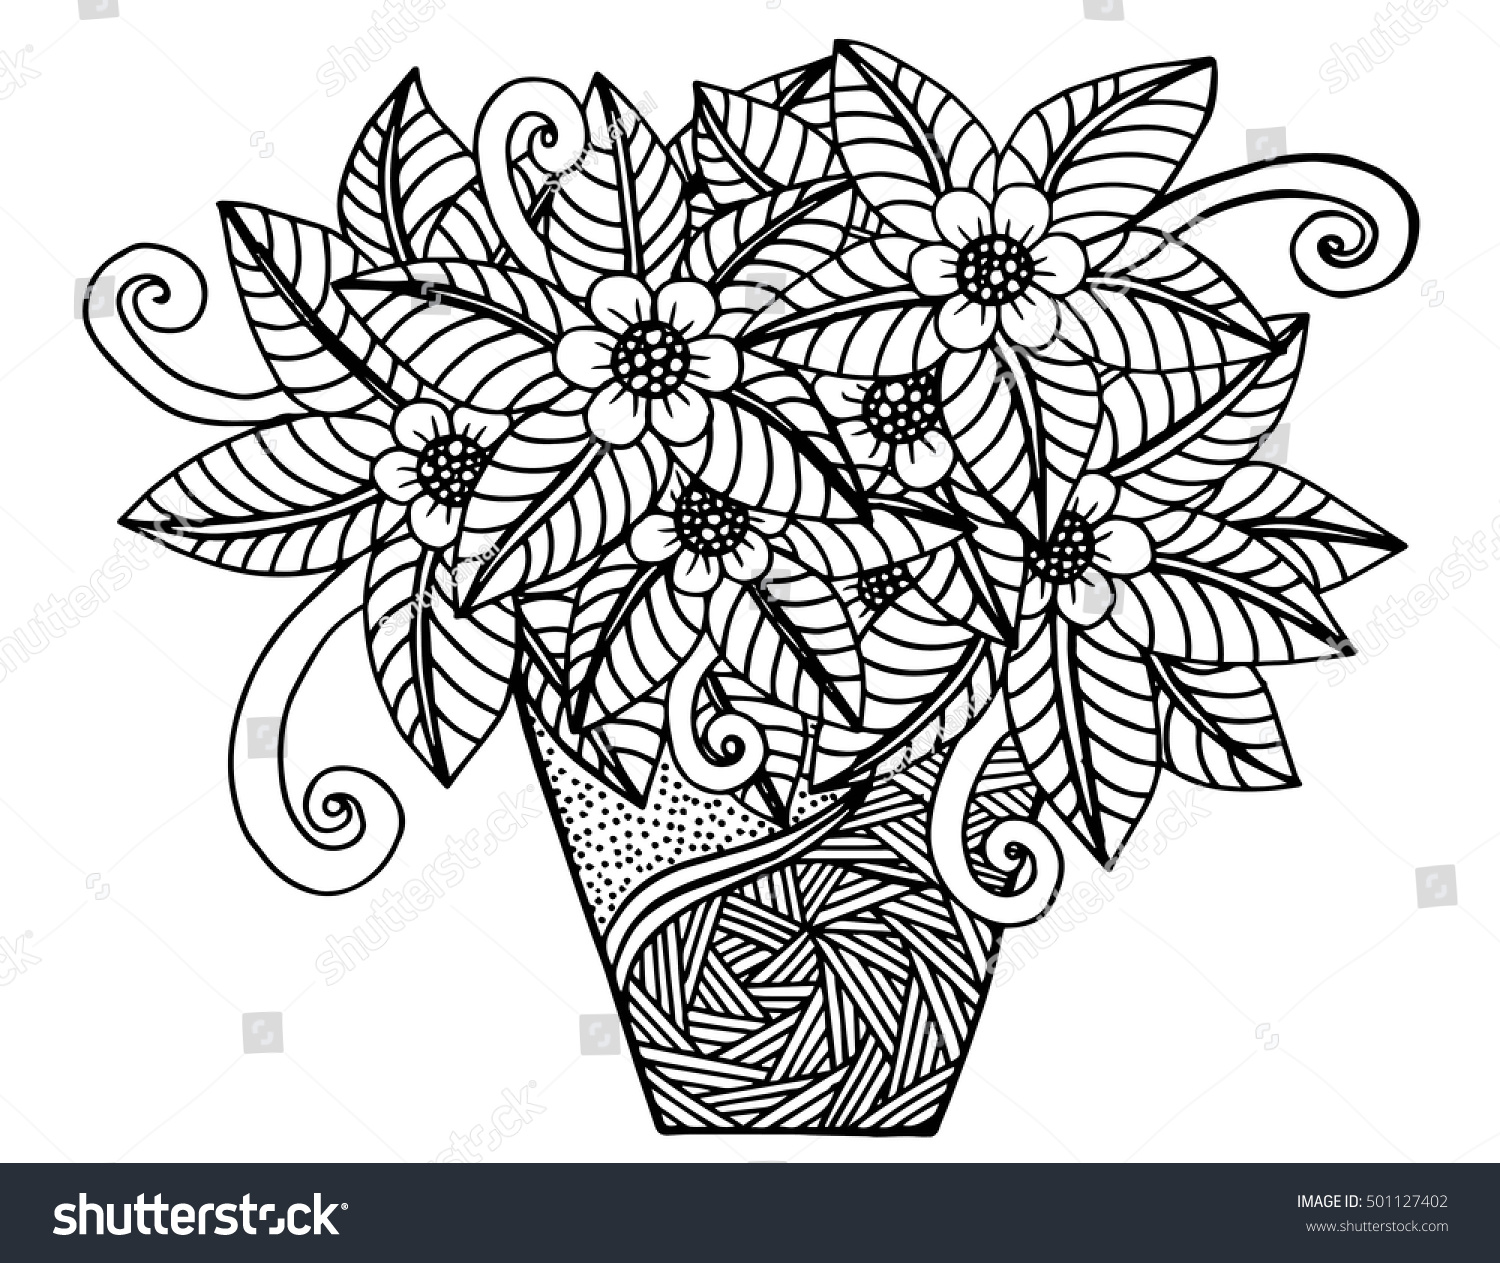 Vector Doodle Floral Illustrated Bouquet Flowers Stock Vector ...